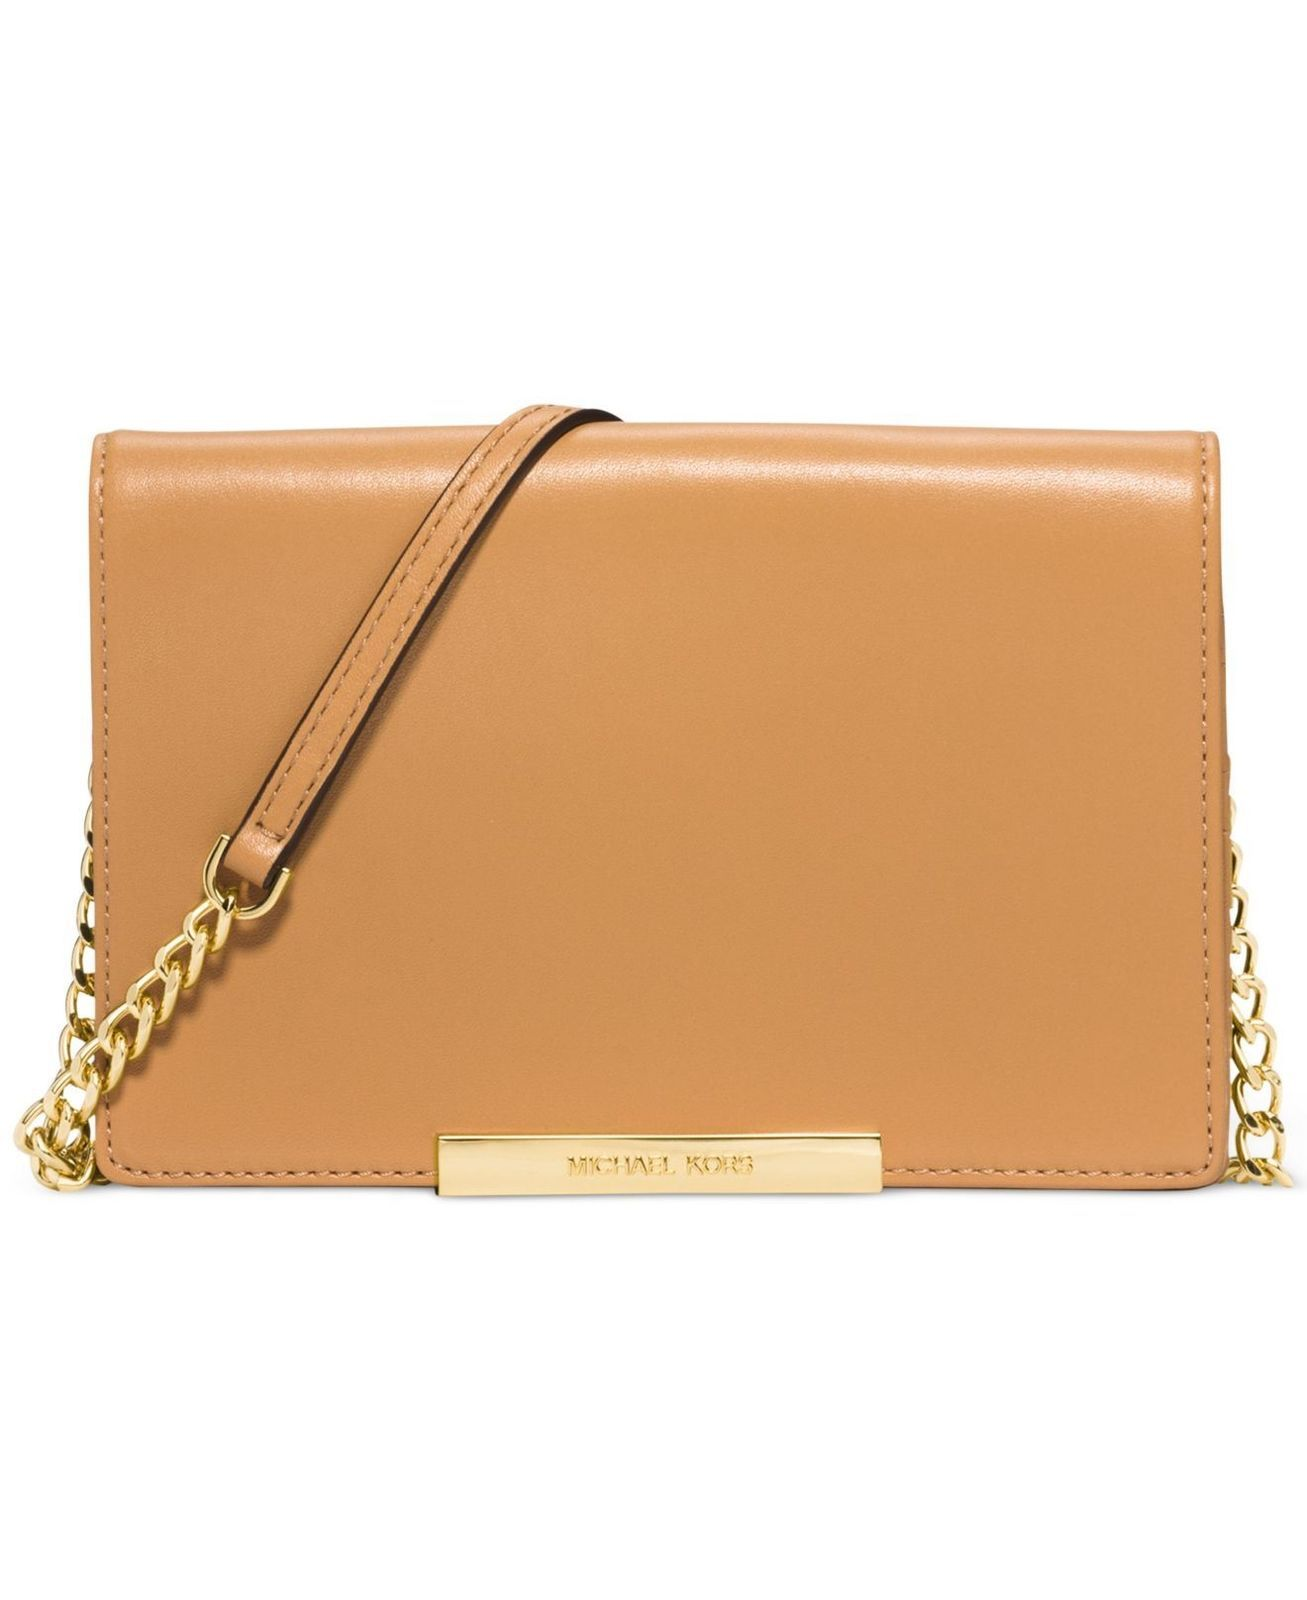 MICHAEL KORS kabelka Lana Leather Wristlet